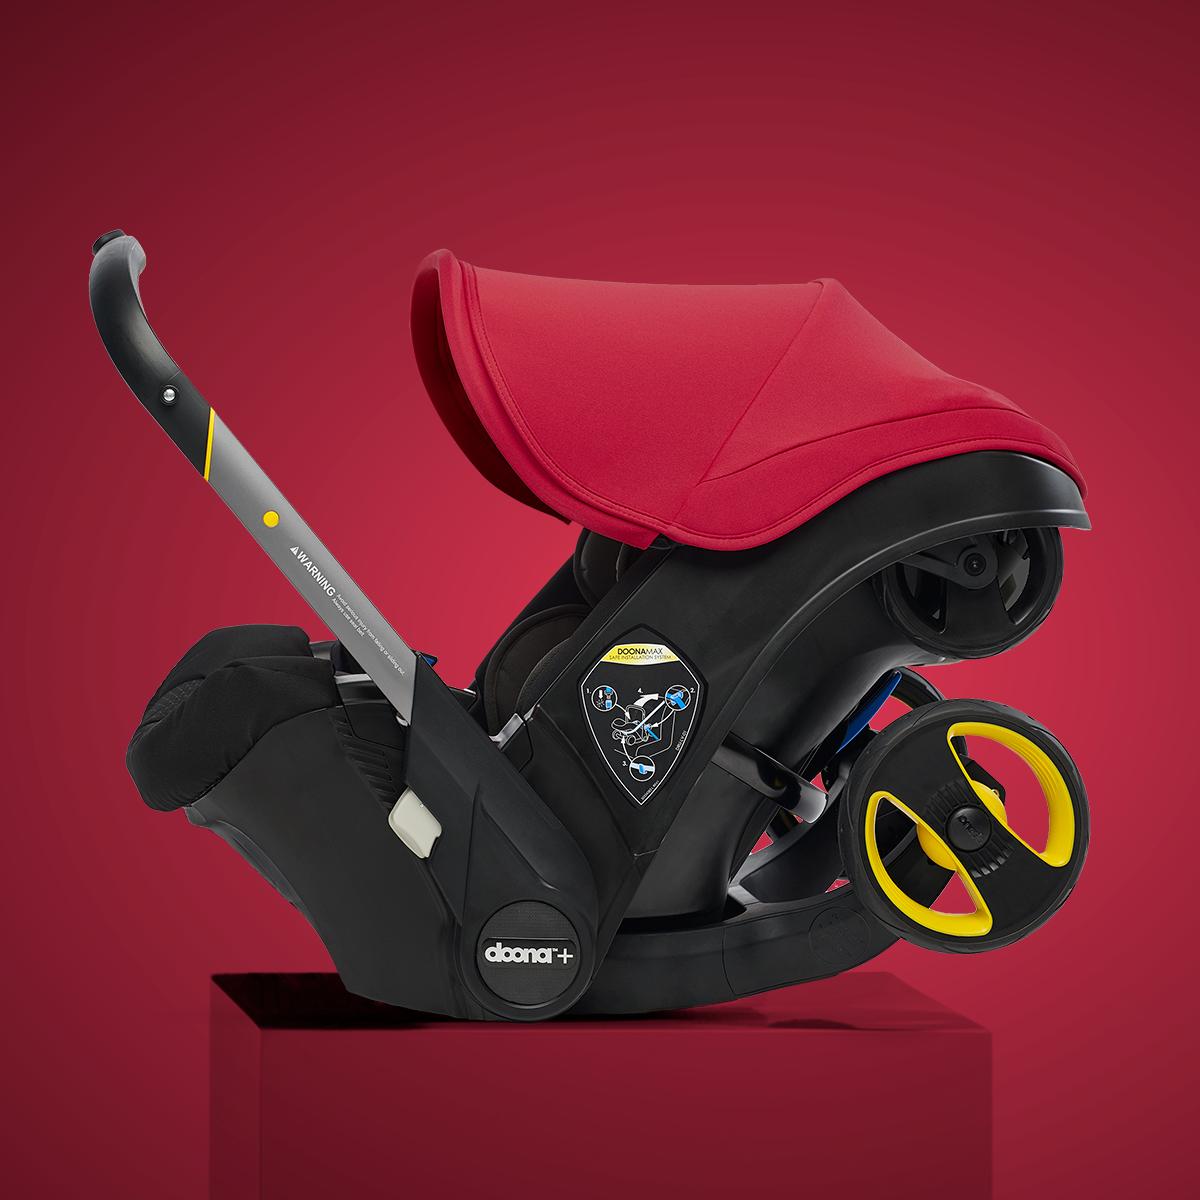 From car seat to stroller in seconds family baby